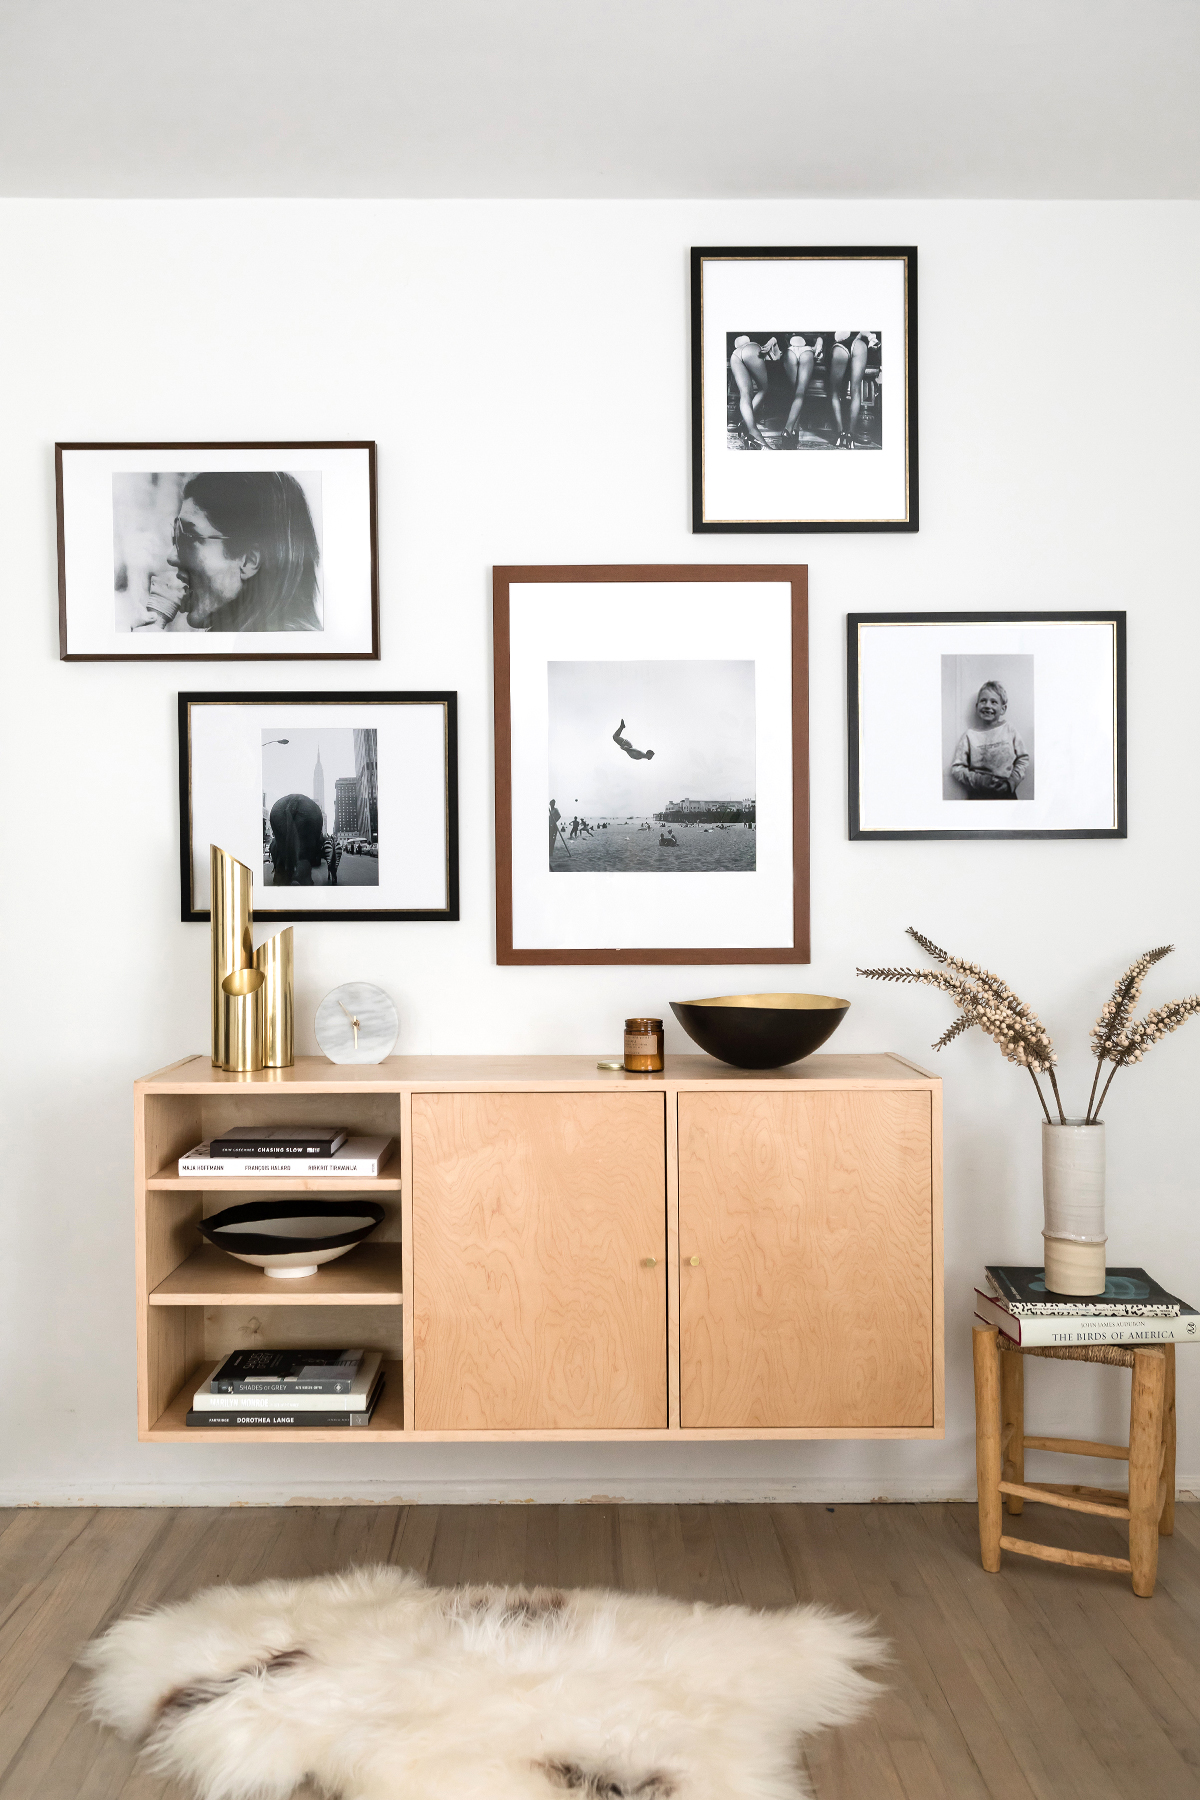 Marvelous 3 Foolproof Steps To Design + Hang The Perfect Gallery Wall